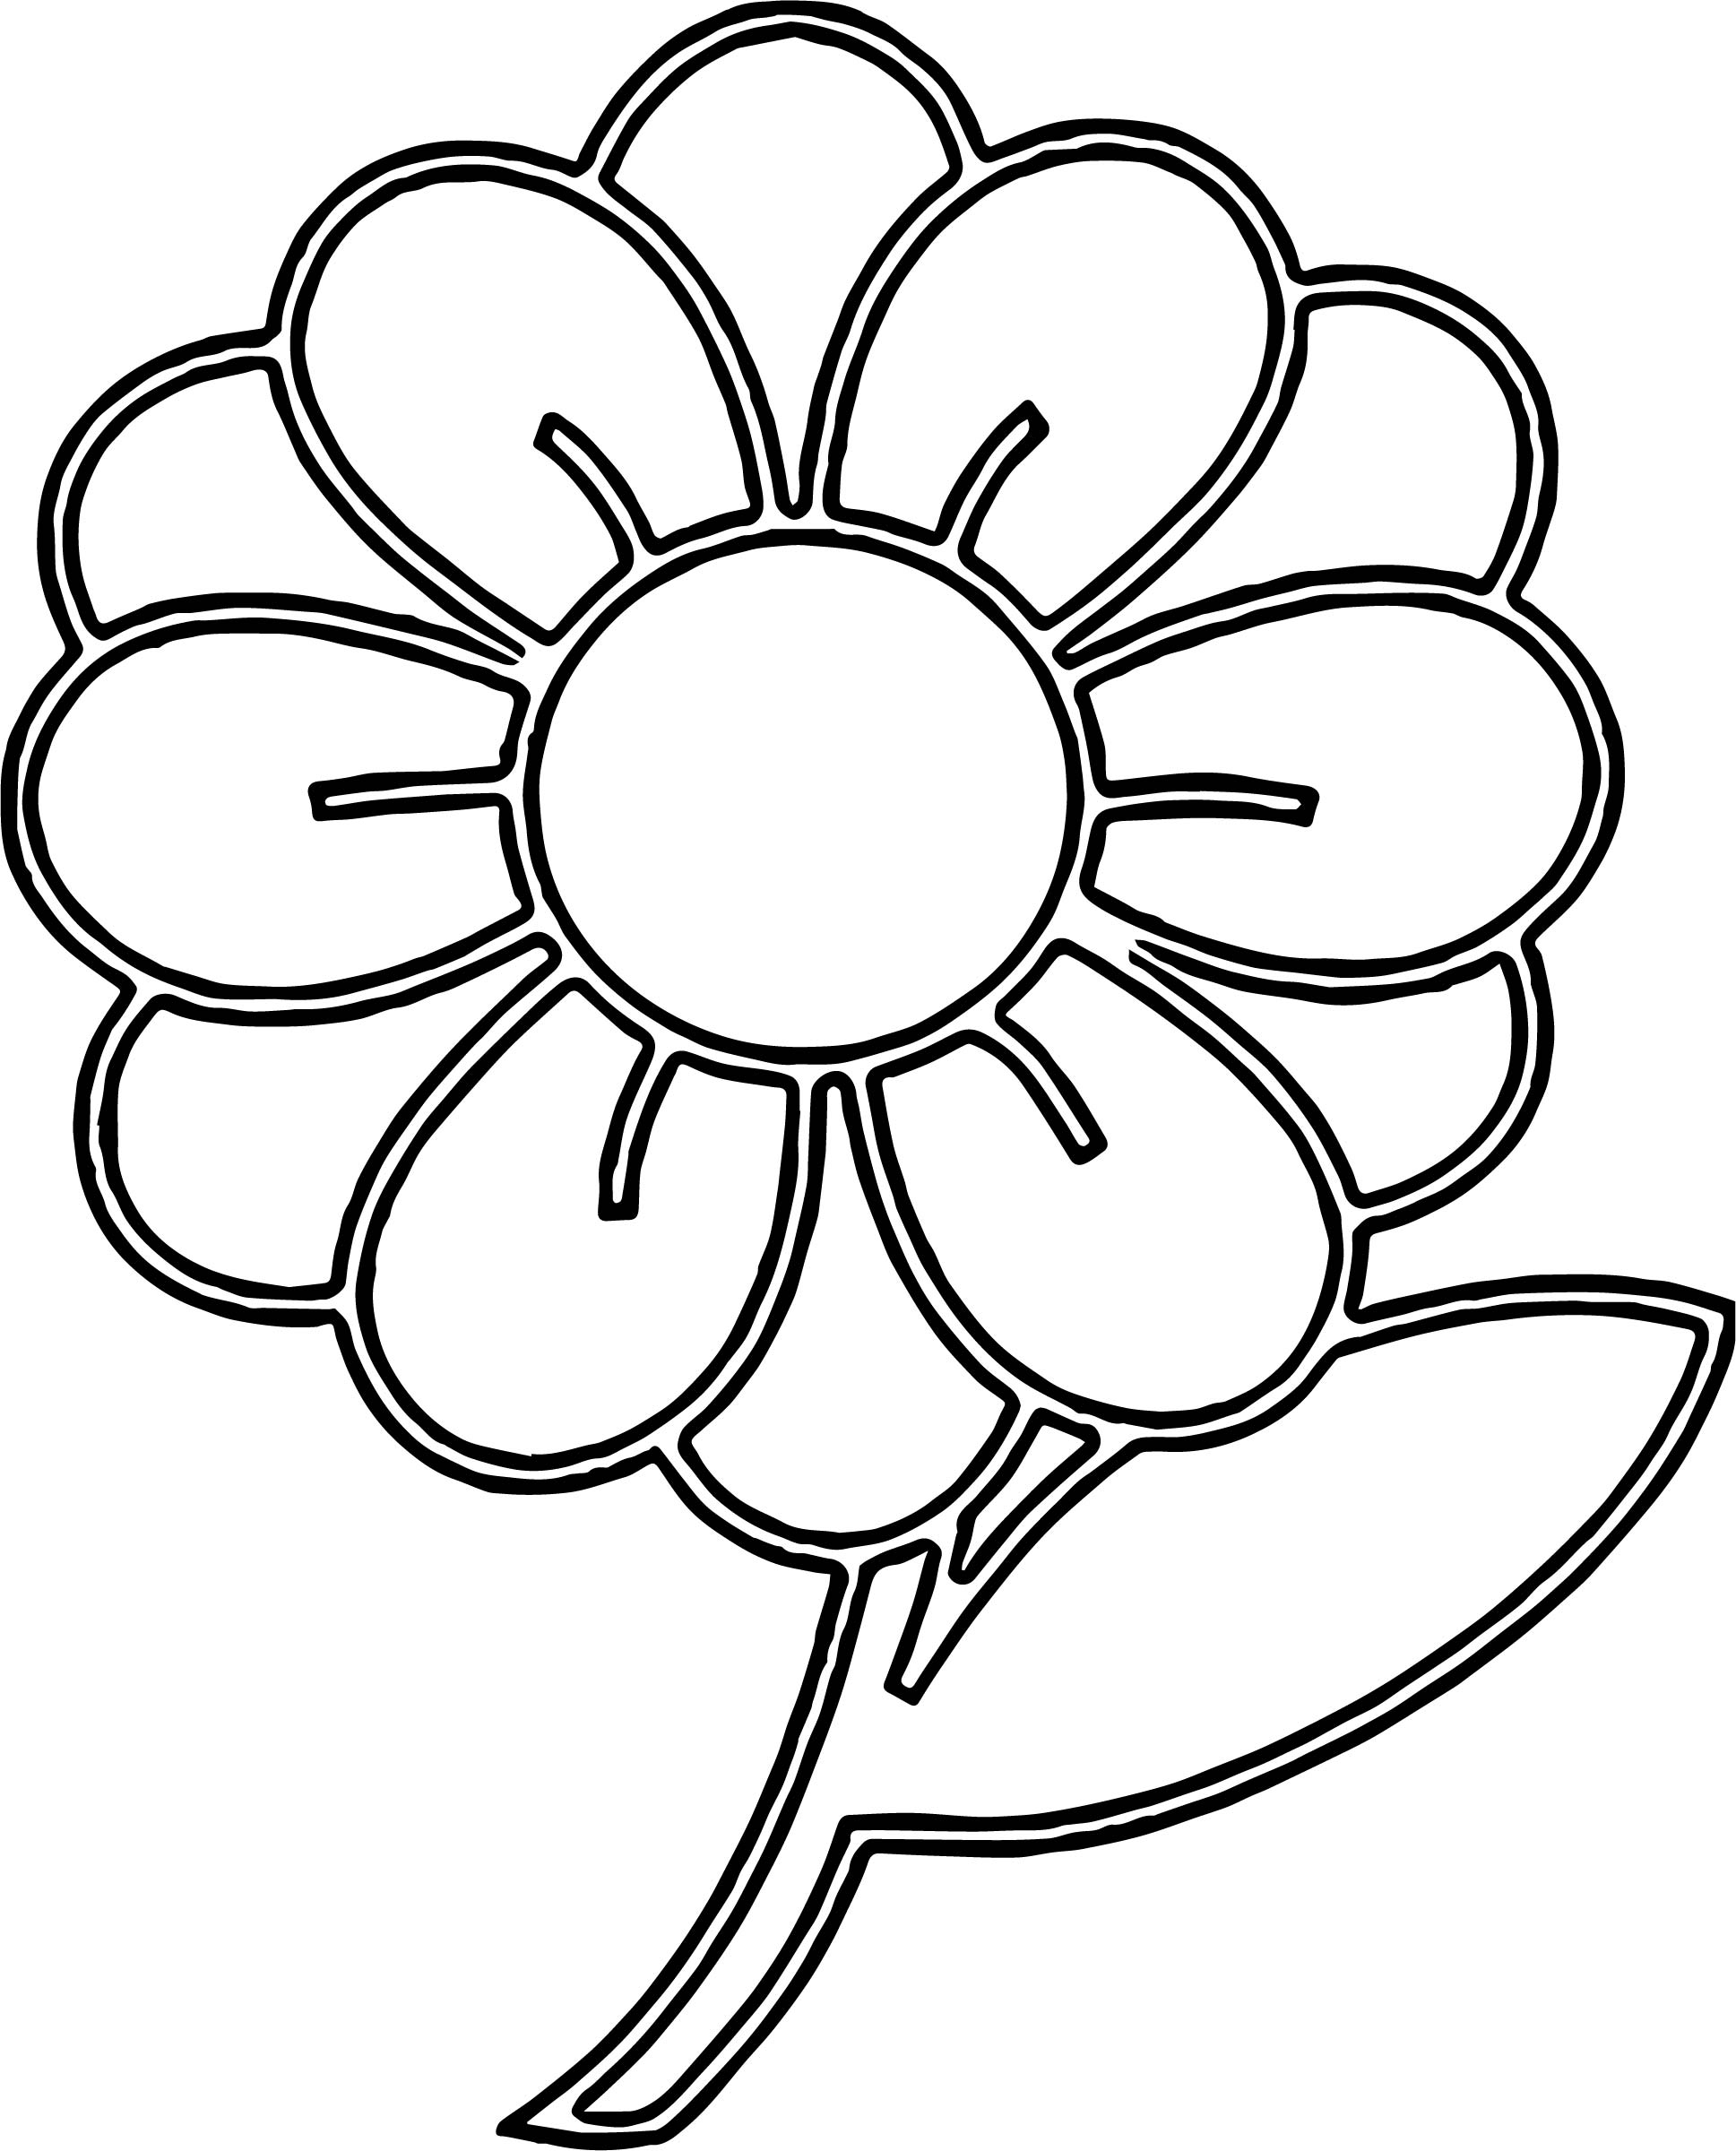 Clipart Flower With Stem Illustration Of A Flower With ...